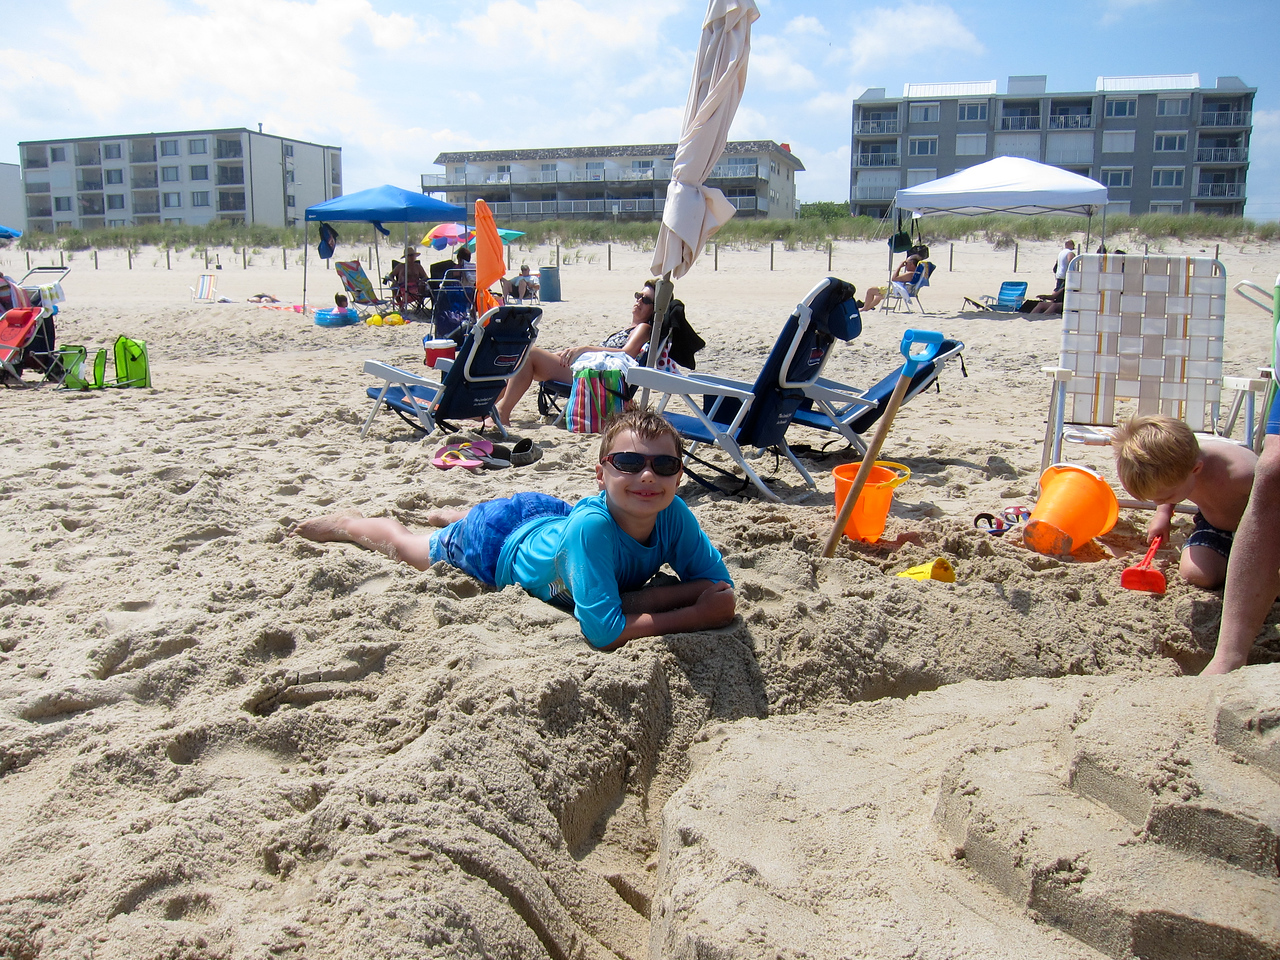 K.C. takes a break from building sand castles.